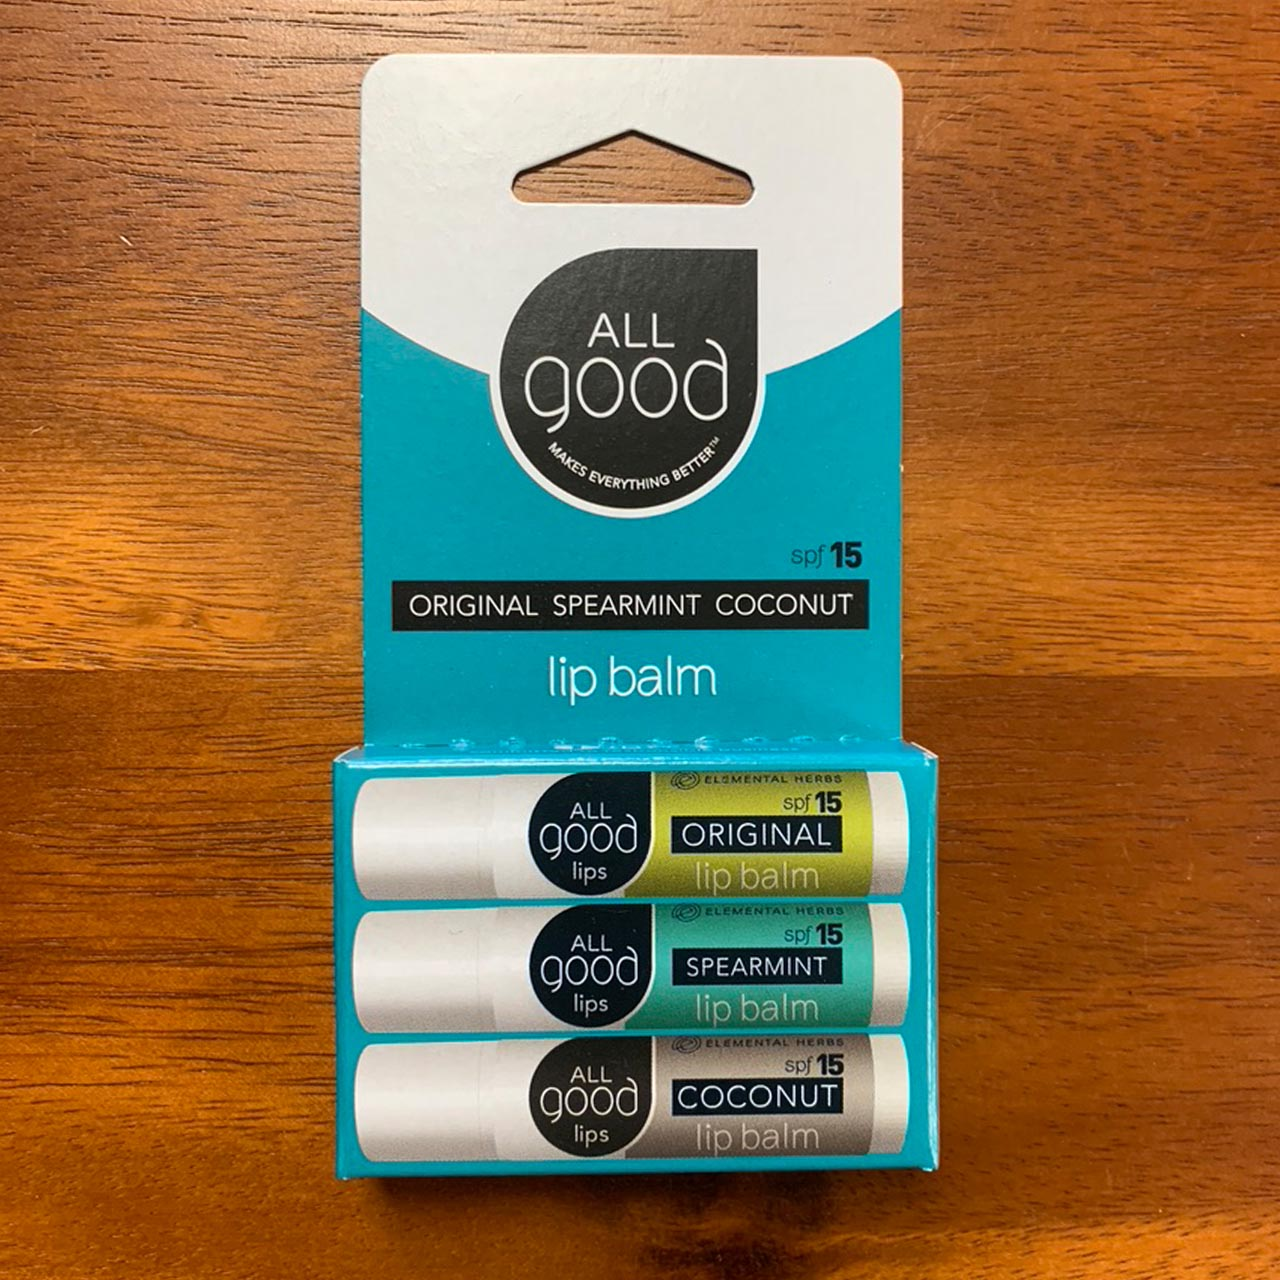 All Good Lip Balm SPF 15 — 3 Pack